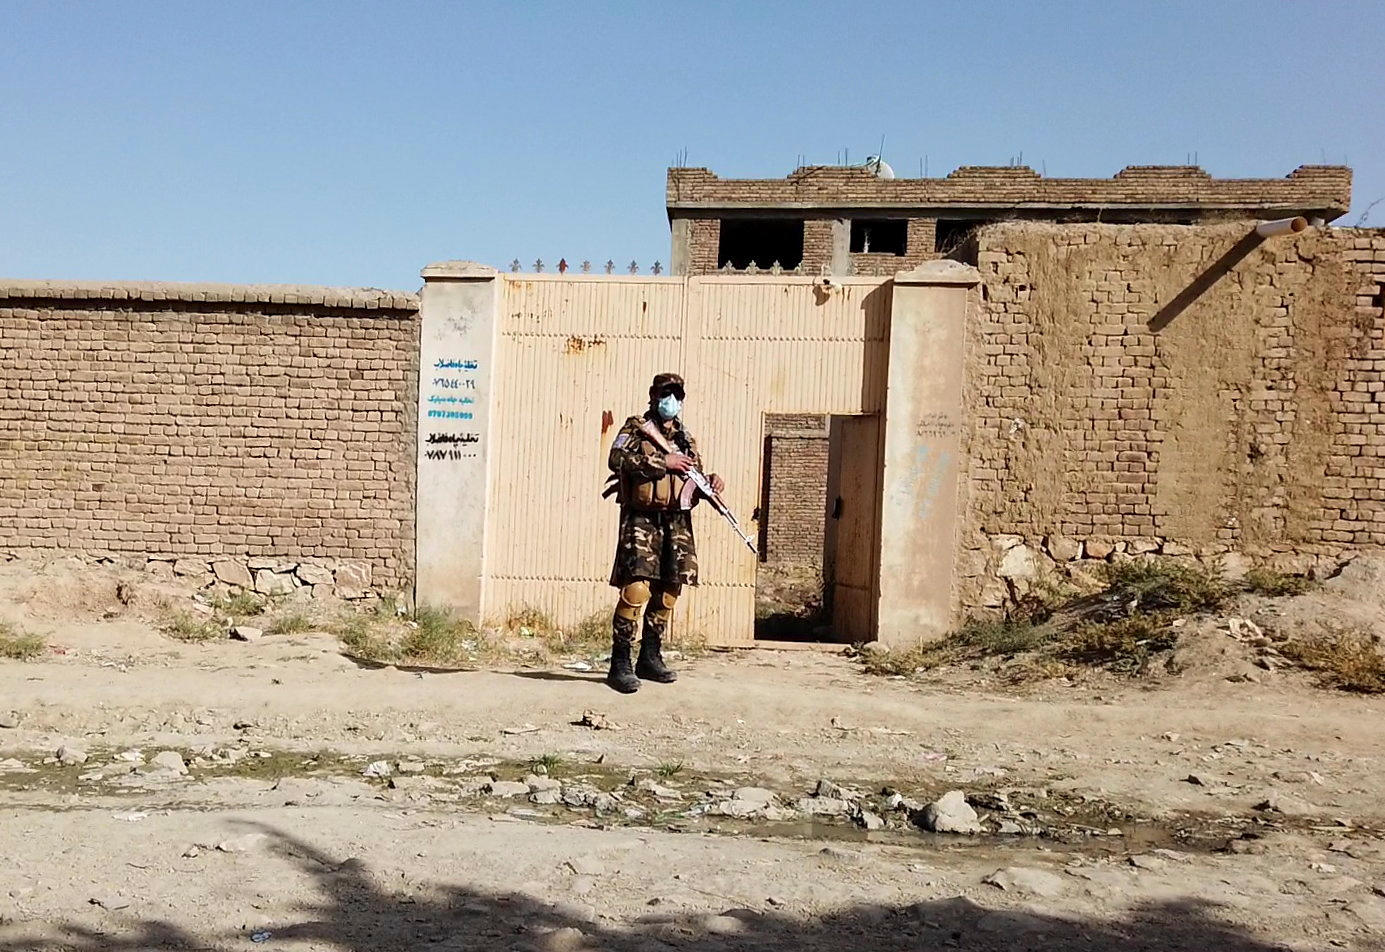 A Taliban solider stands guard in front of a house neighbouring the Islamic State hideout raided by Taliban forces on Sunday night in northern Kabul, Afghanistan October 4, 2021. REUTERS/Staff